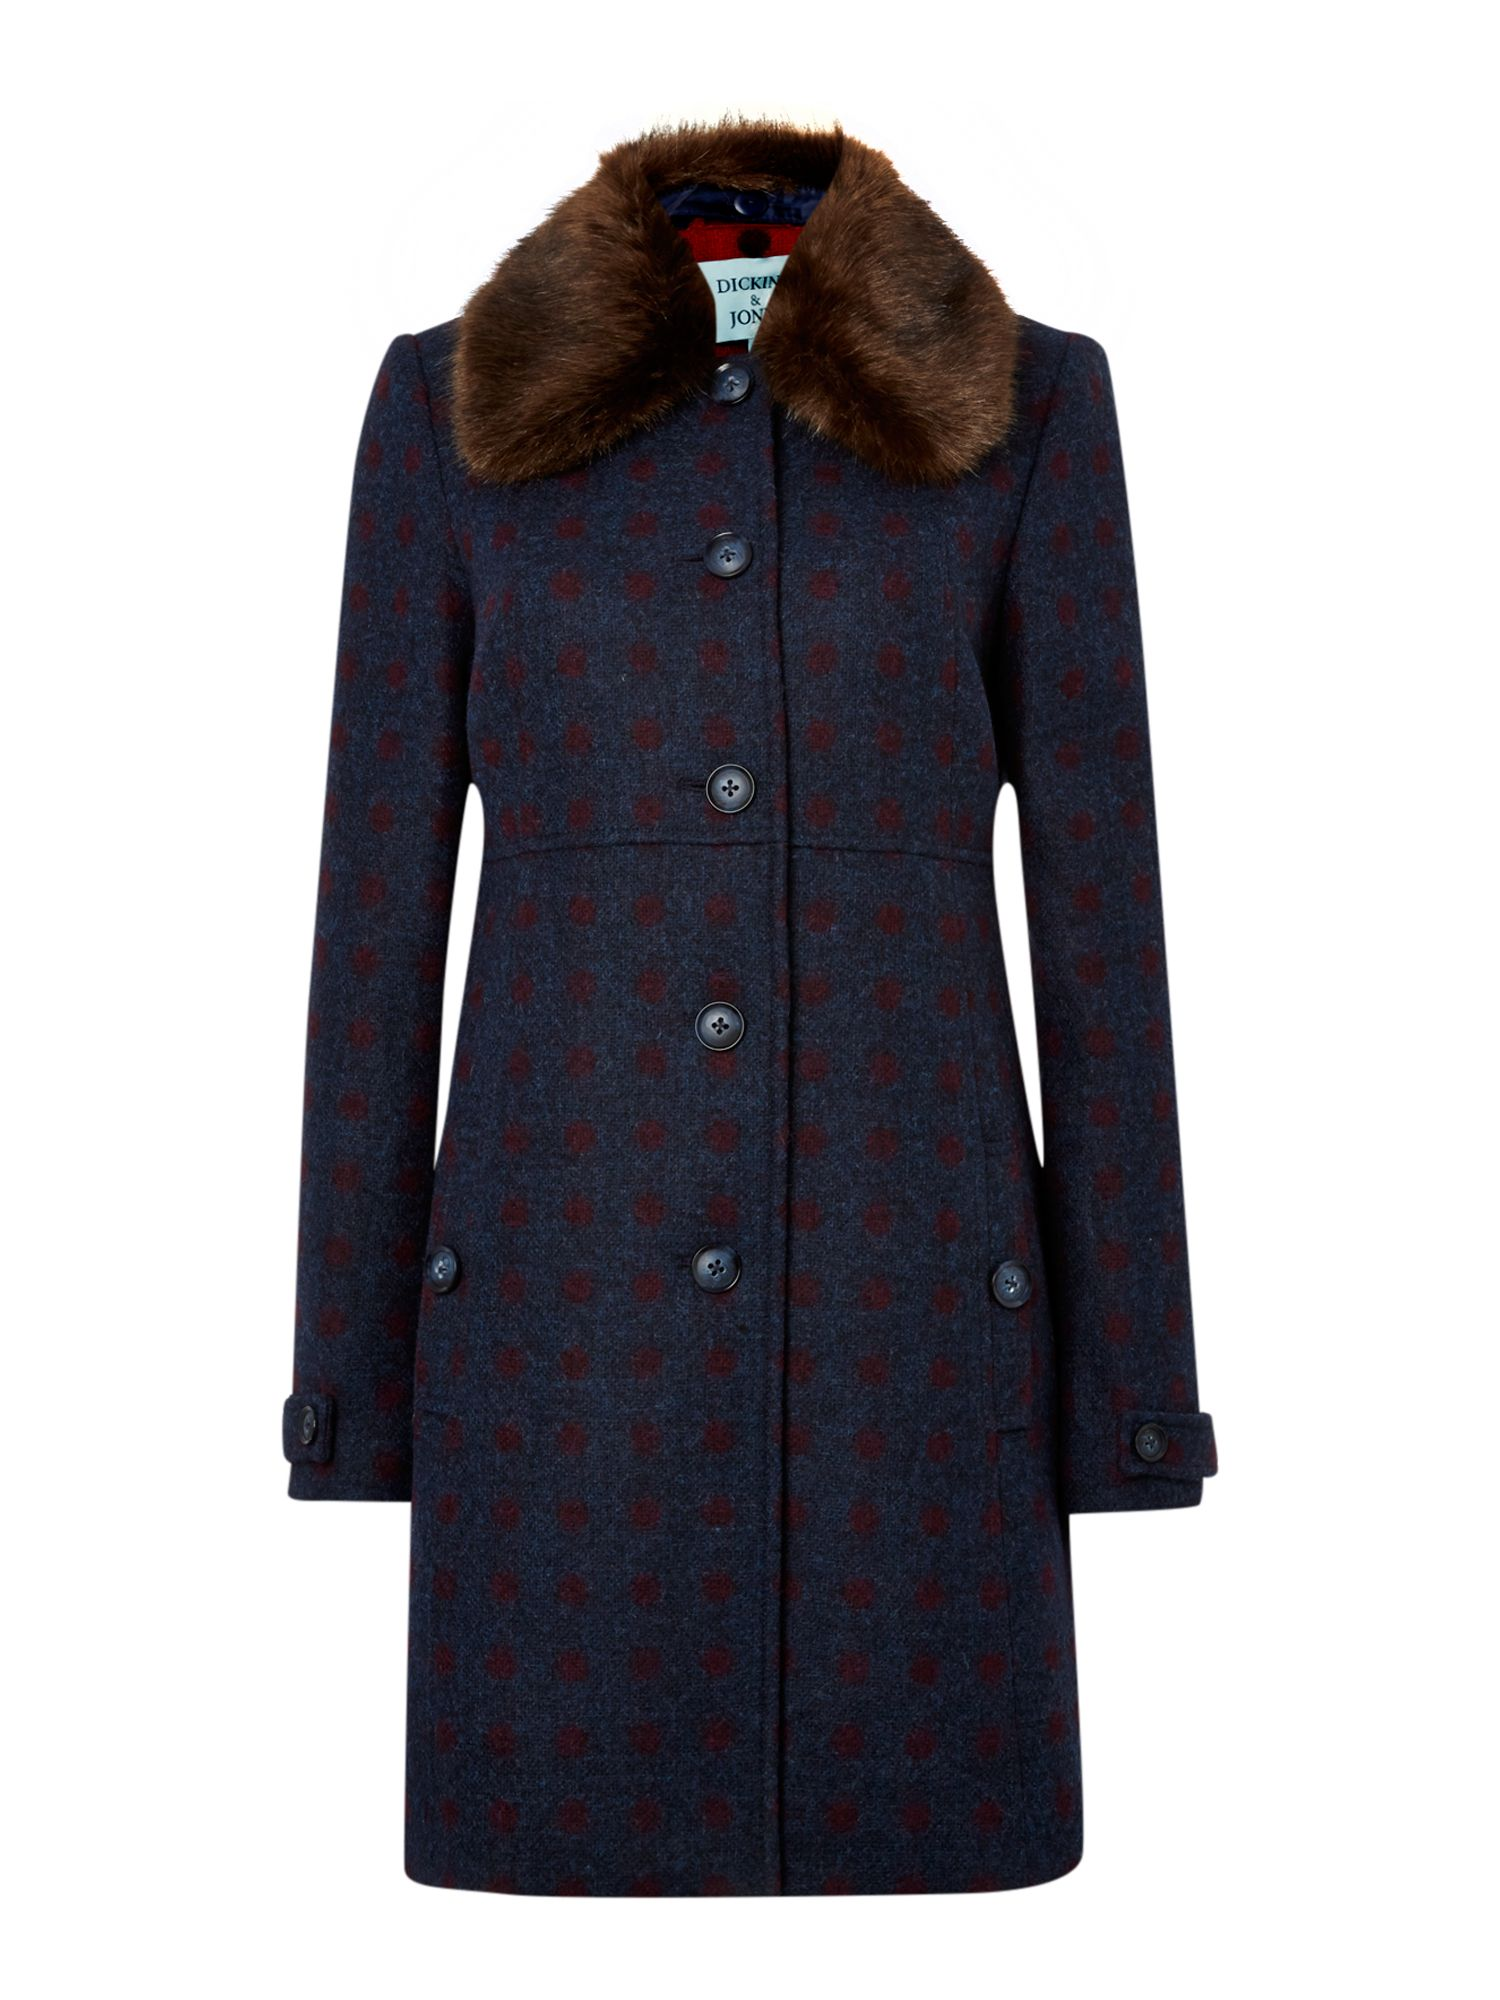 British hampton spot wool faux fur coat